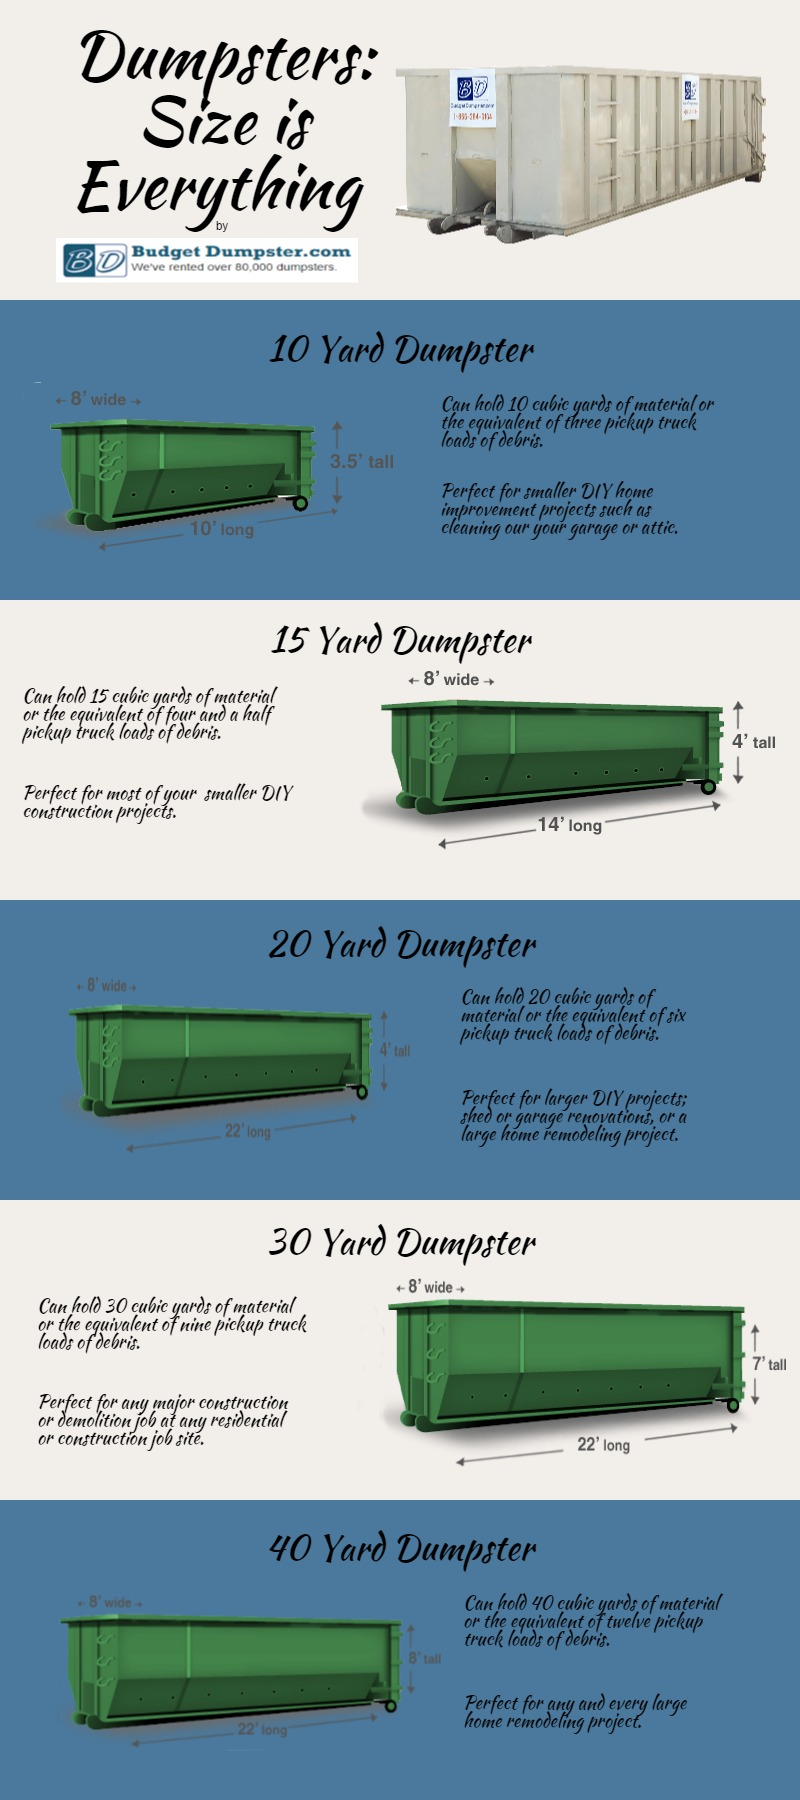 Dumpsters - Size is Everything